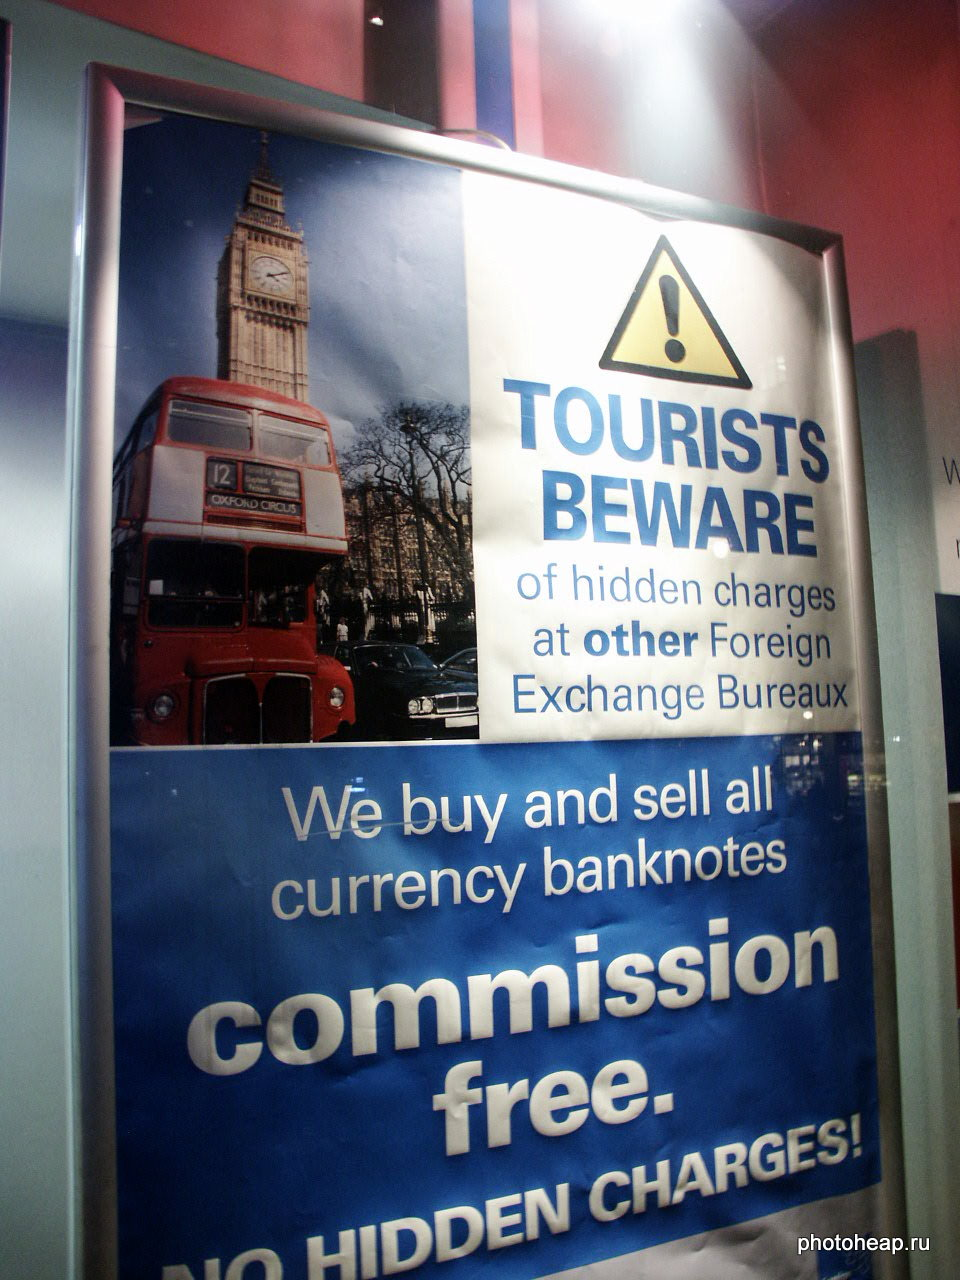 Tourists beware of hidden charges at other Foreign Exchange Bureaux